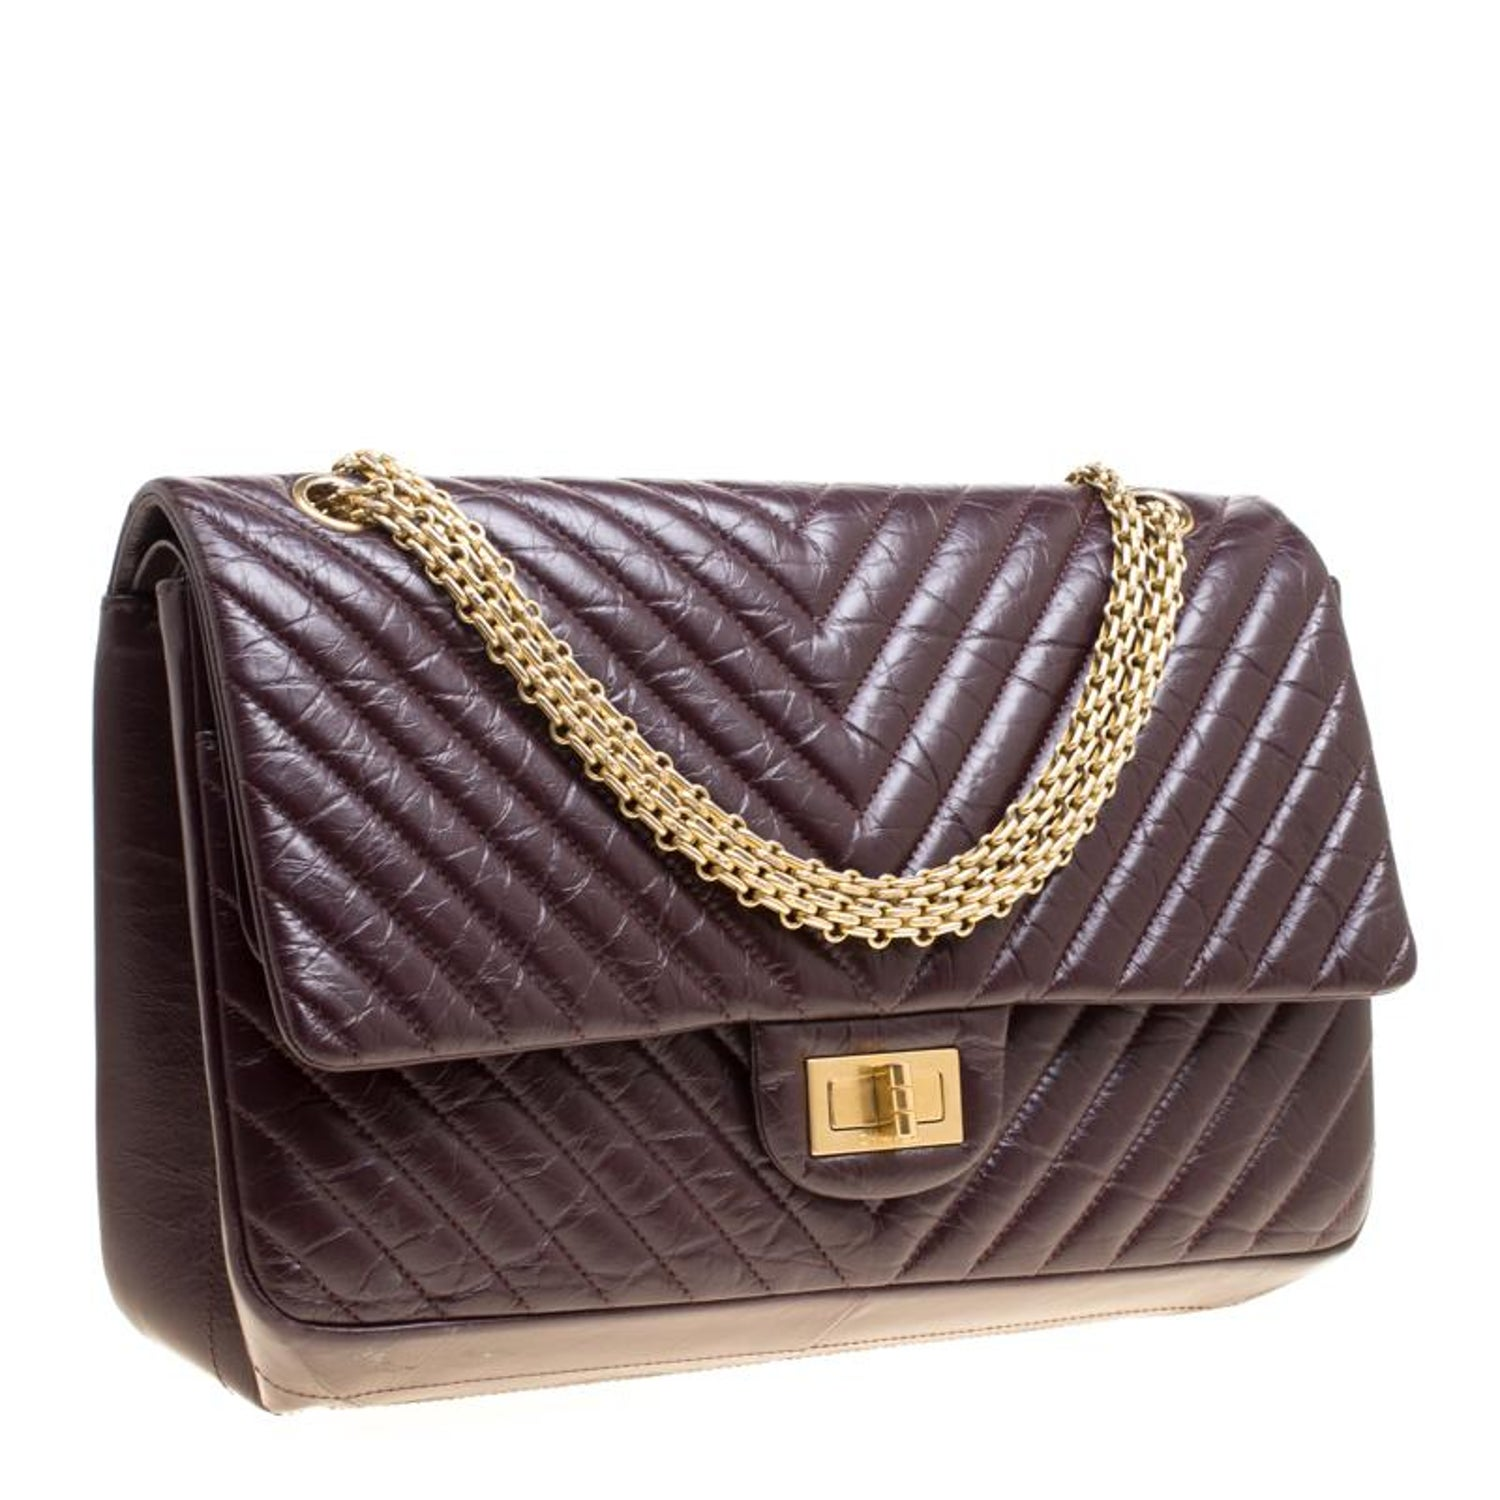 f331329d5a9ddb Chanel Burgundy Chevron Quilted Leather Reissue 2 55 Clic 227